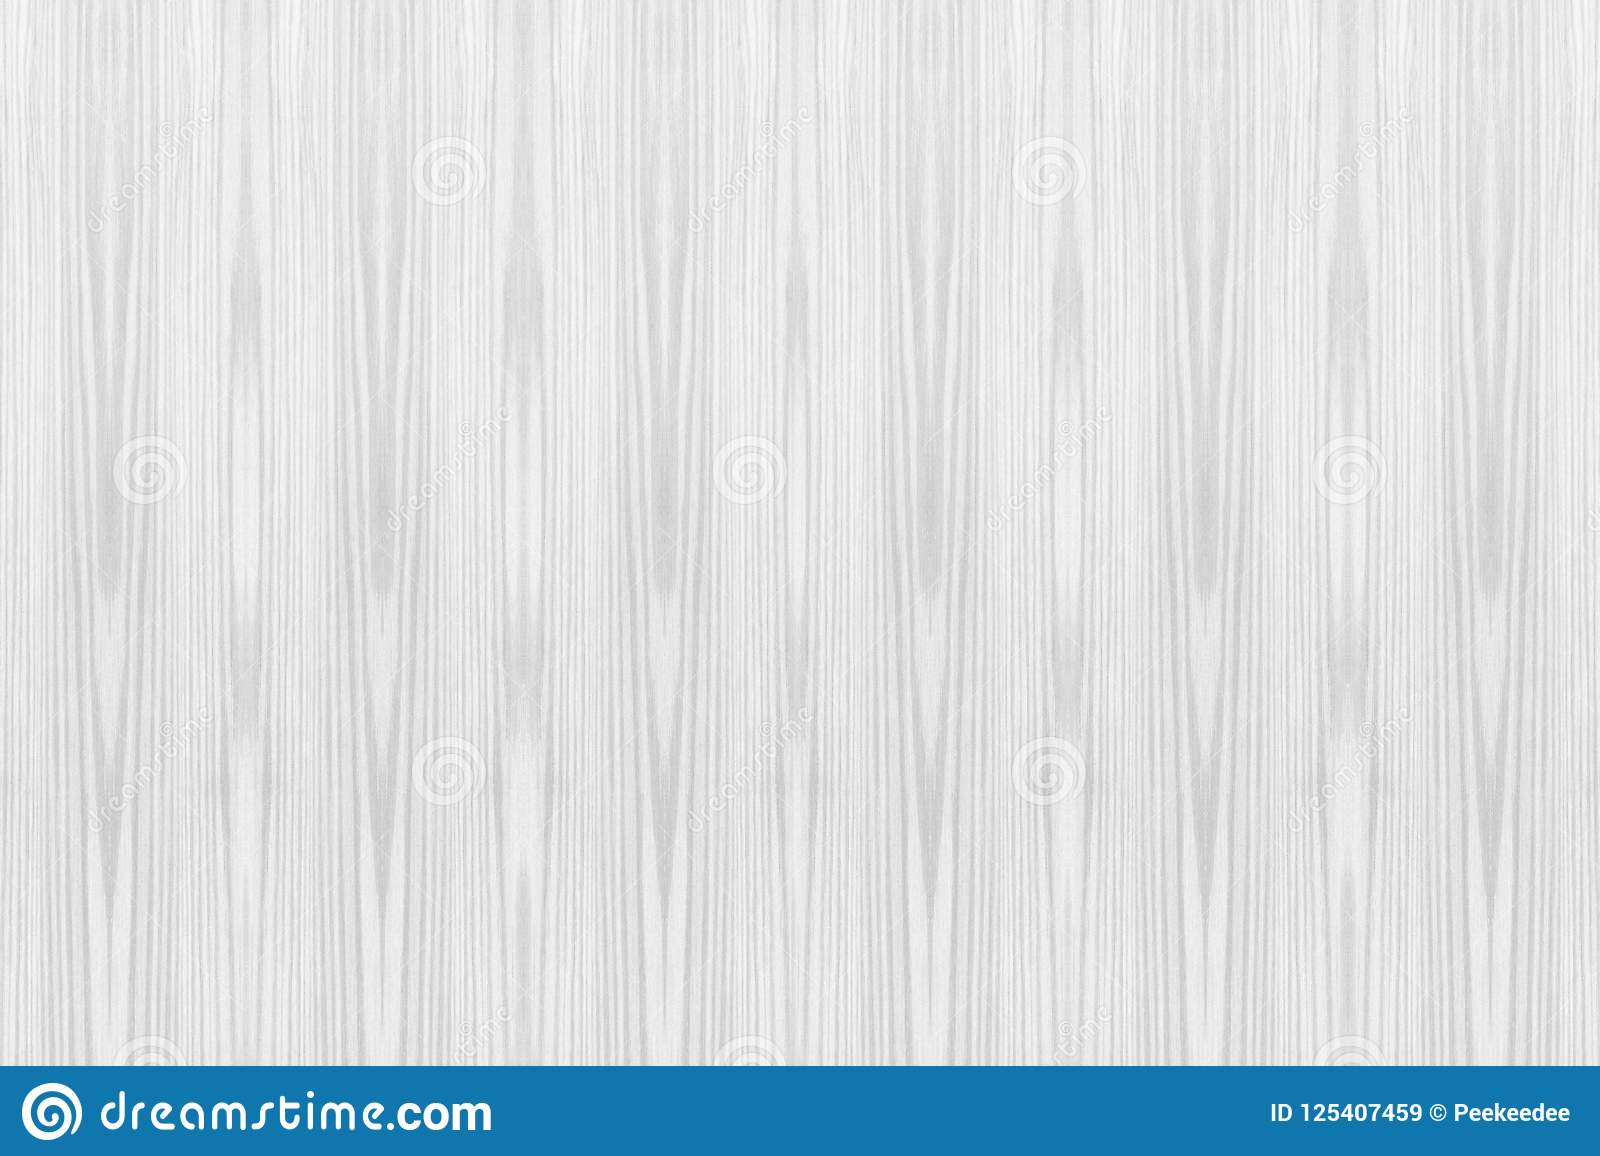 White wood texture background, Wood wall background or texture. Natural pattern wood background